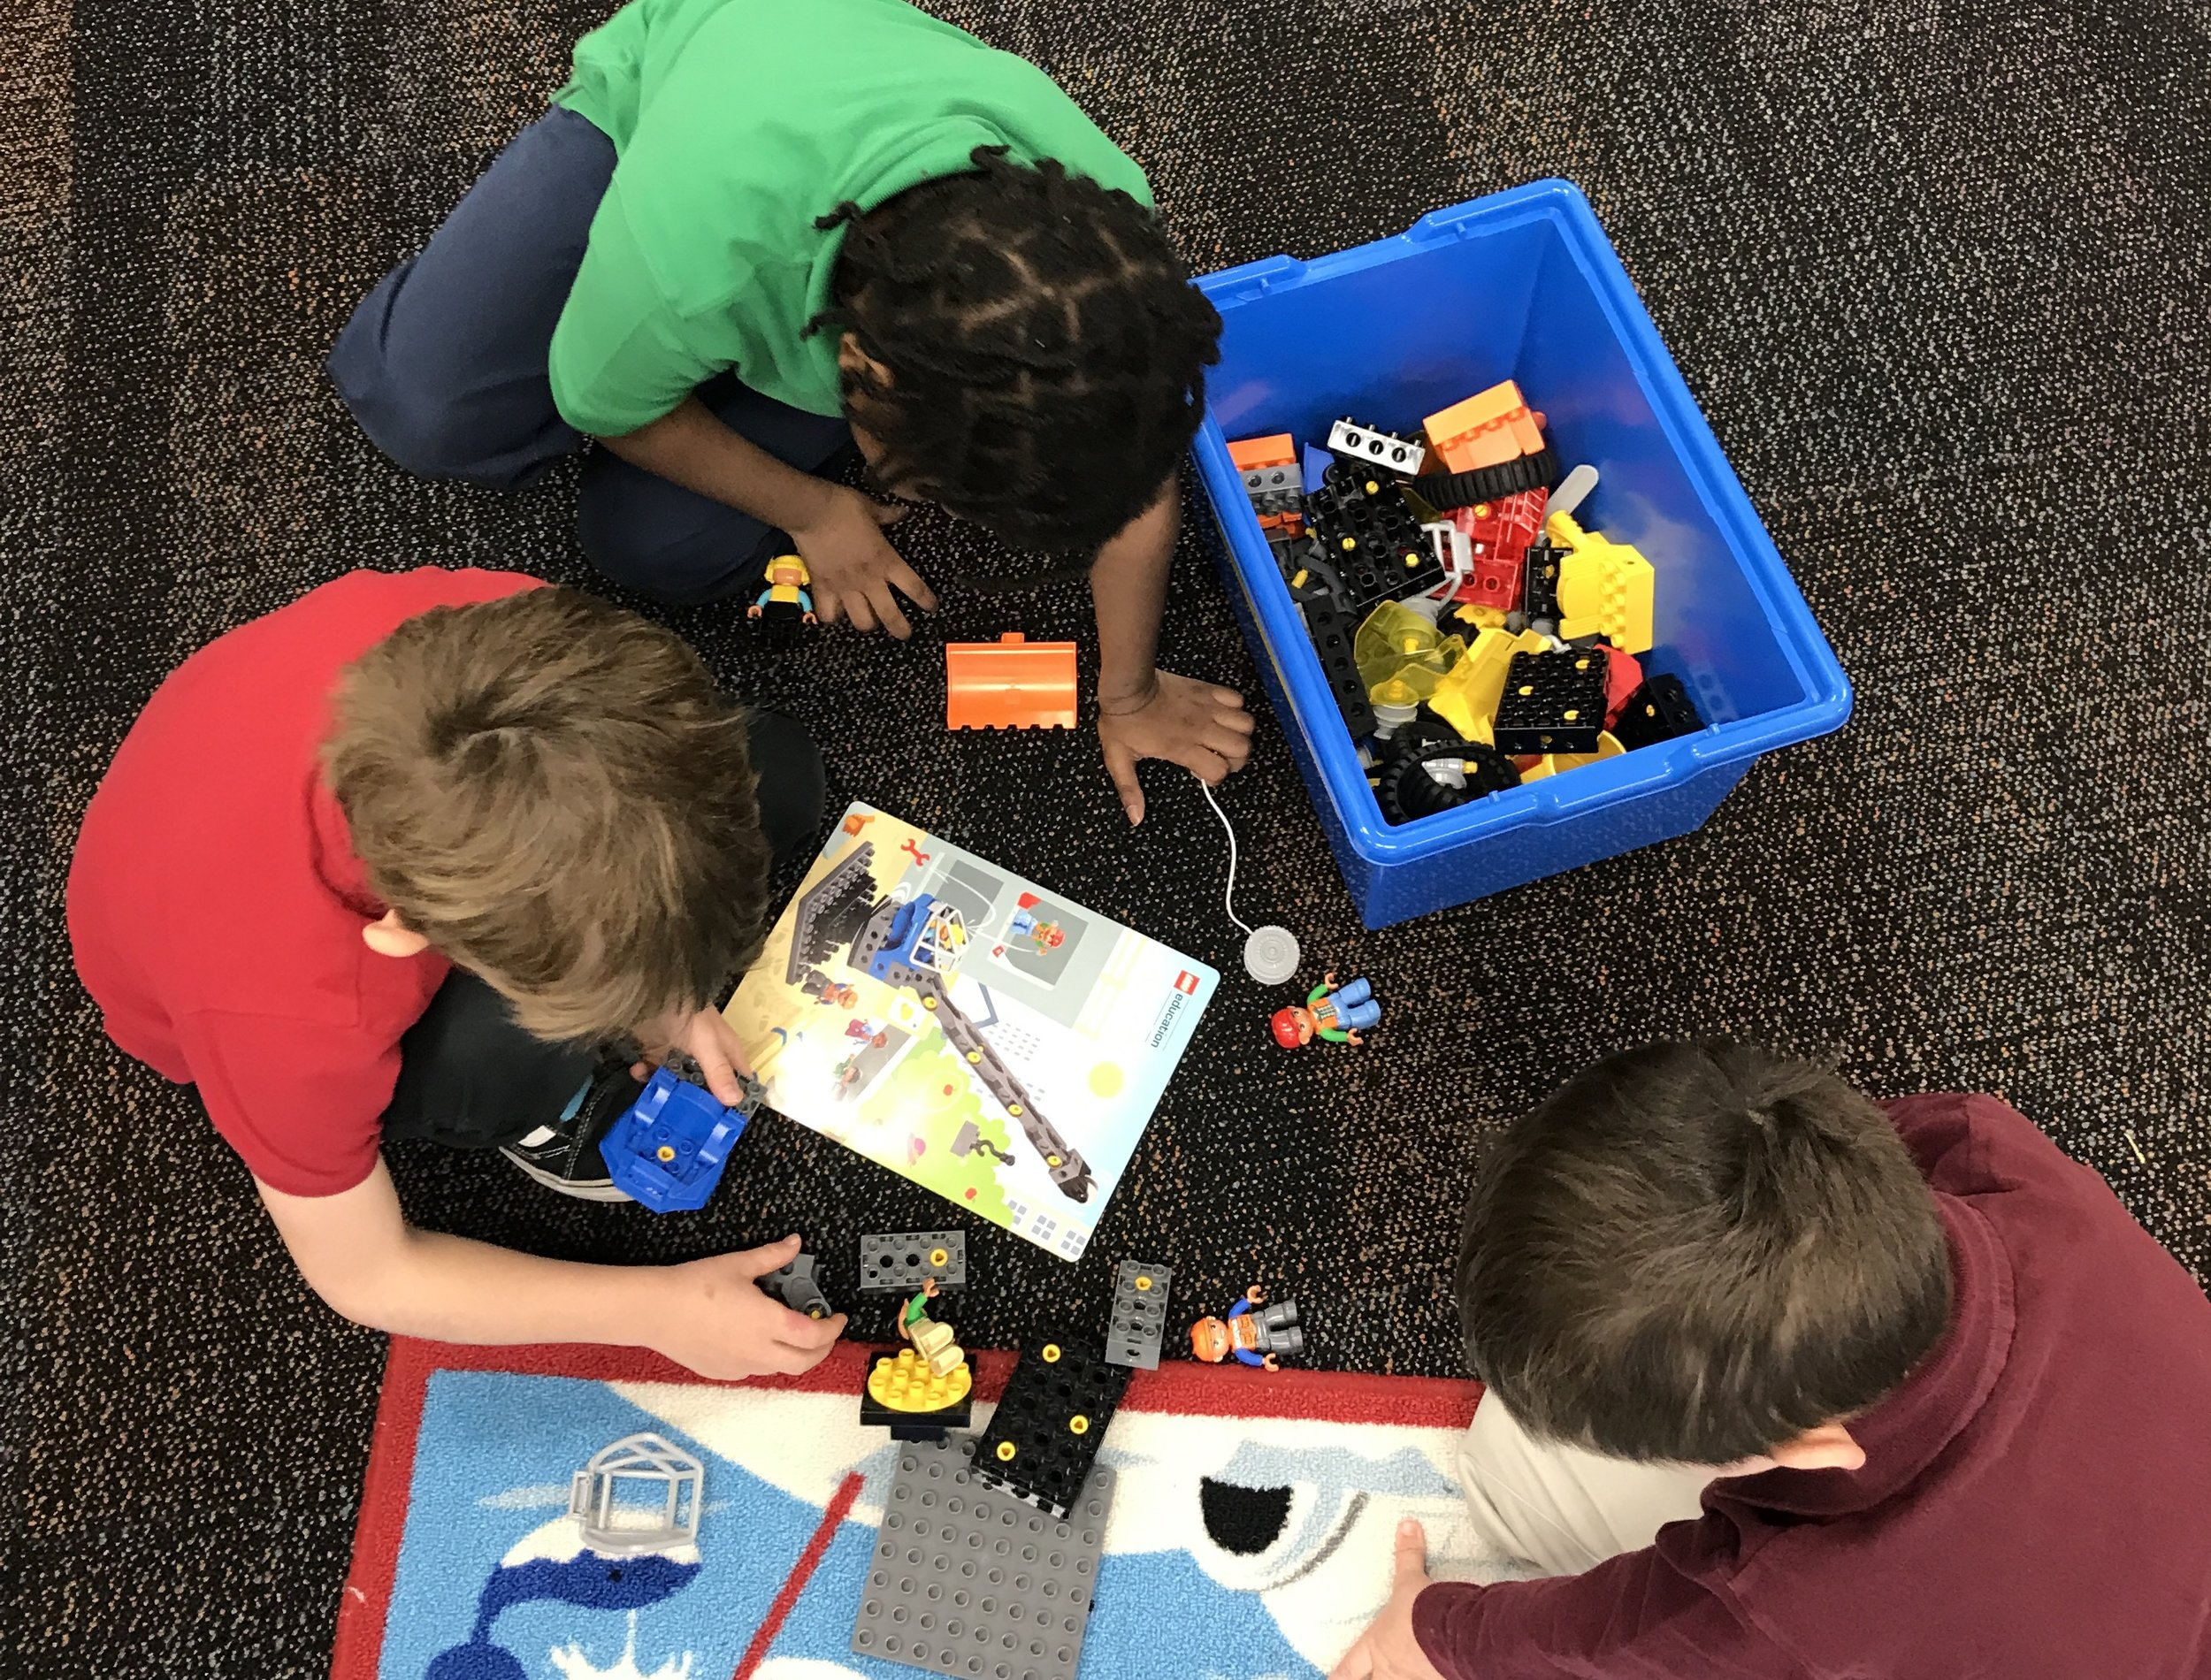 Students collaborate to build machines in an after-school LEGO Club